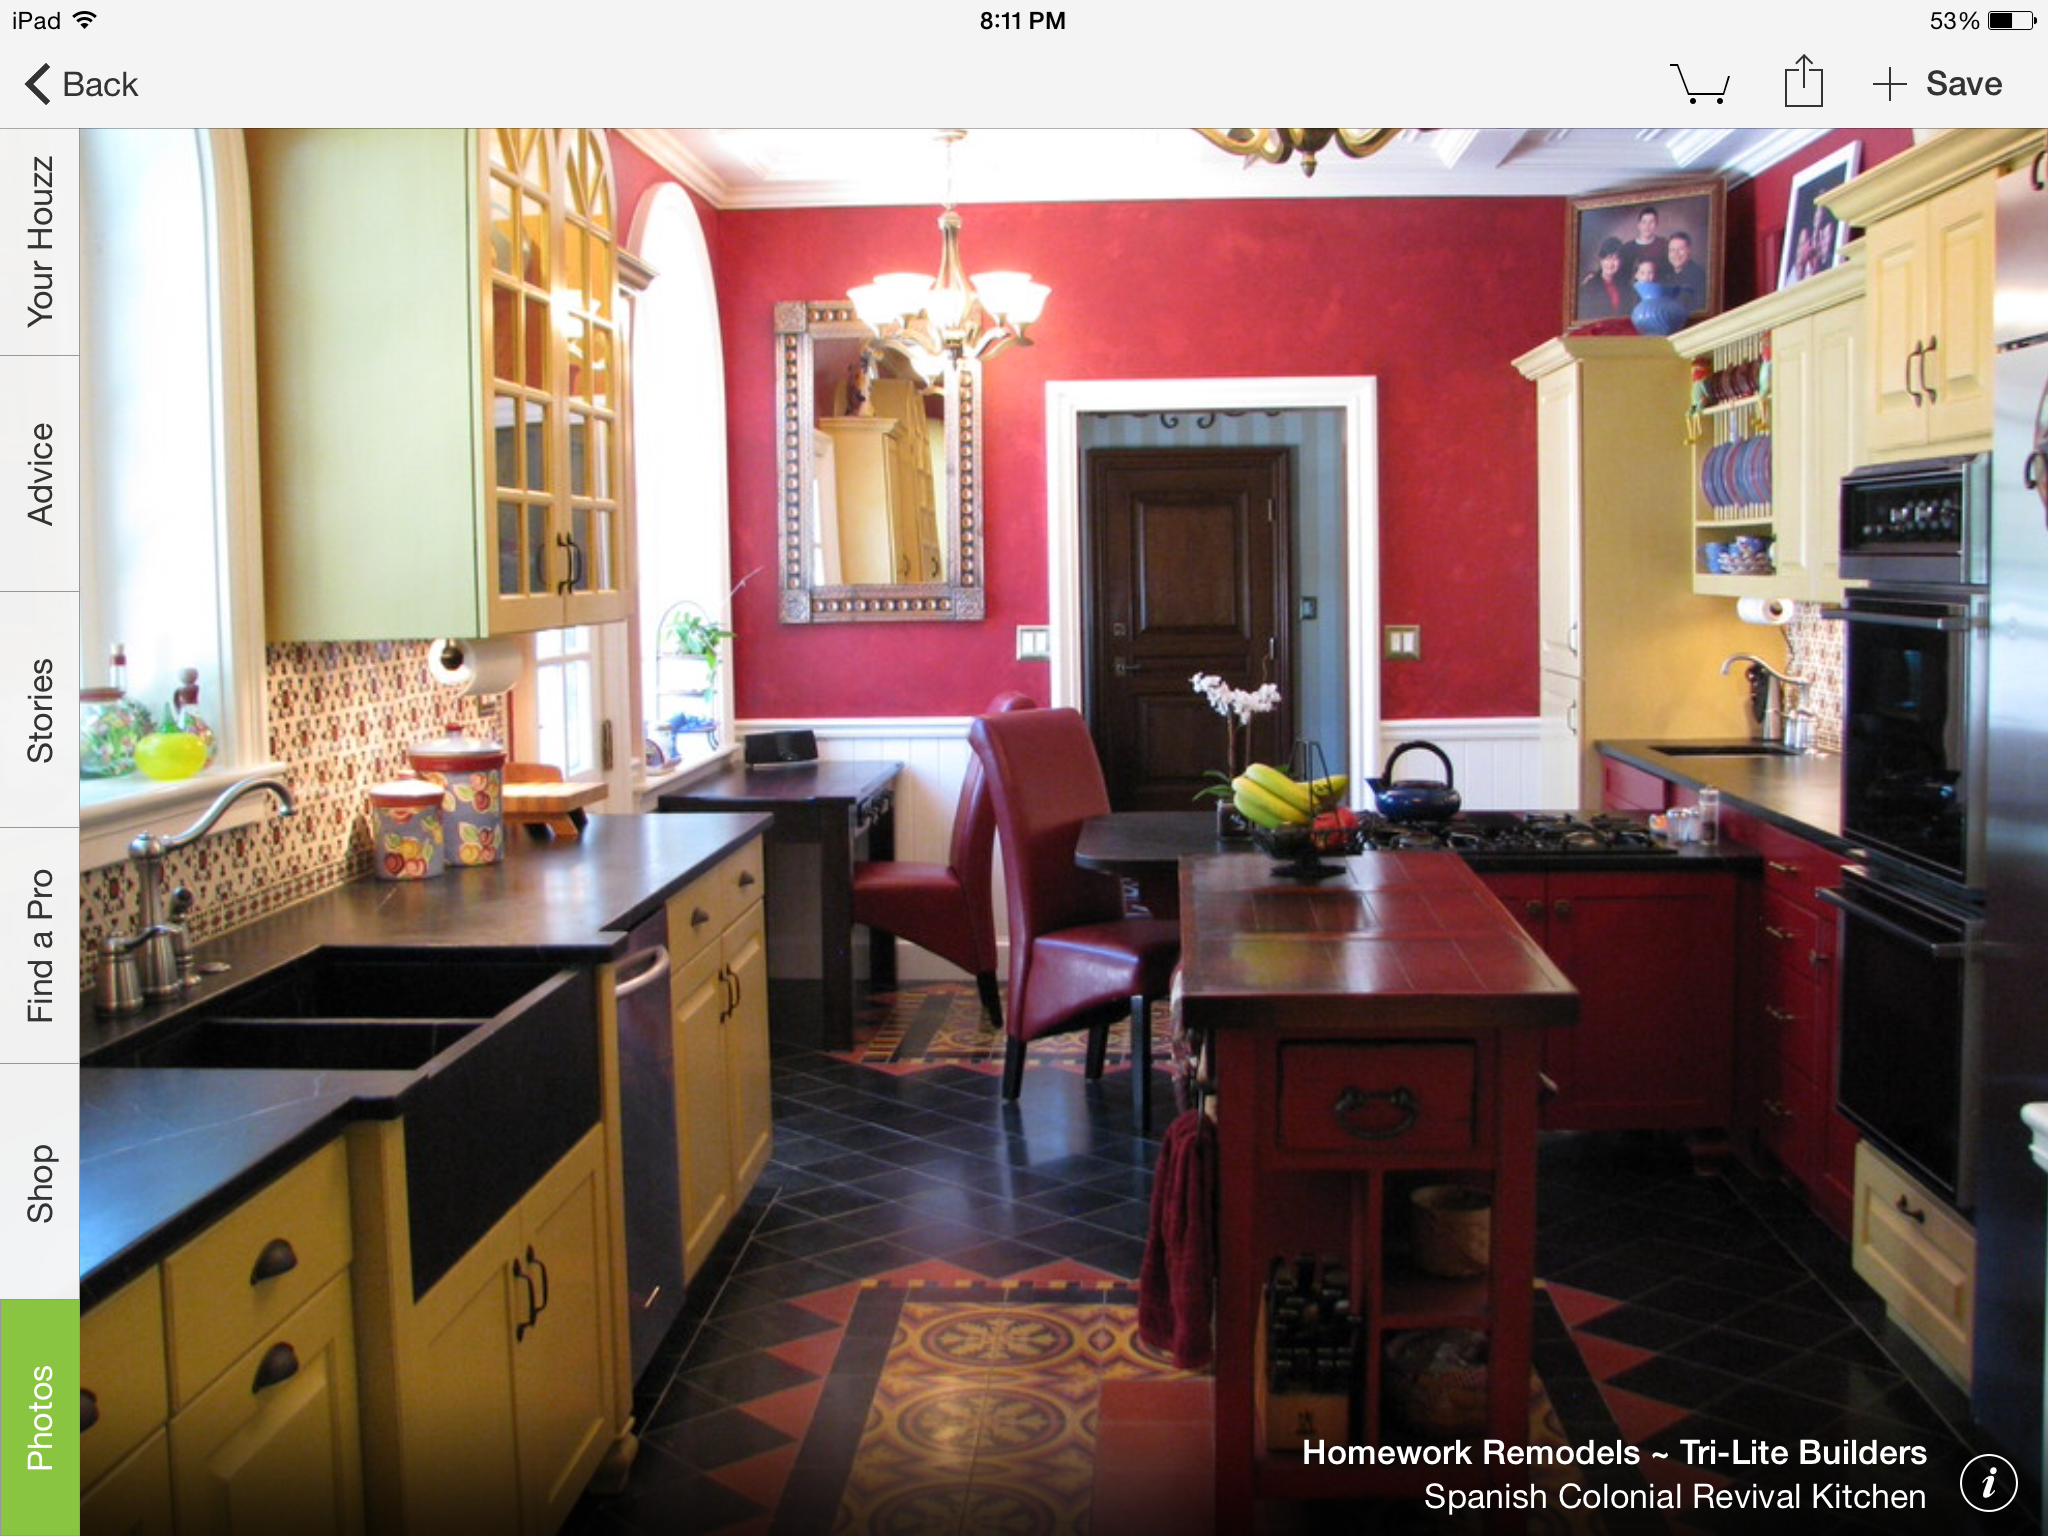 Yellow Mexican Style Kitchen Ideas - Wiring DATA • on kitchen island ideas, mexican kitchen cabinets, mexican swimming pool ideas, mexican painted cabinets, mexican themed kitchen ideas, mexican kitchen paintings, pumpkin kitchen ideas, orange and yellow kitchen ideas, southwest kitchen ideas, pineapple kitchen ideas, 1940s kitchen ideas, mexican colors for kitchen, country kitchen ideas, mexican kitchen paint, ranch kitchen ideas, mexican kitchen backsplash ideas, mexican kitchen decor, 2015 kitchen ideas, red kitchen ideas, mexican kitchen hoods,